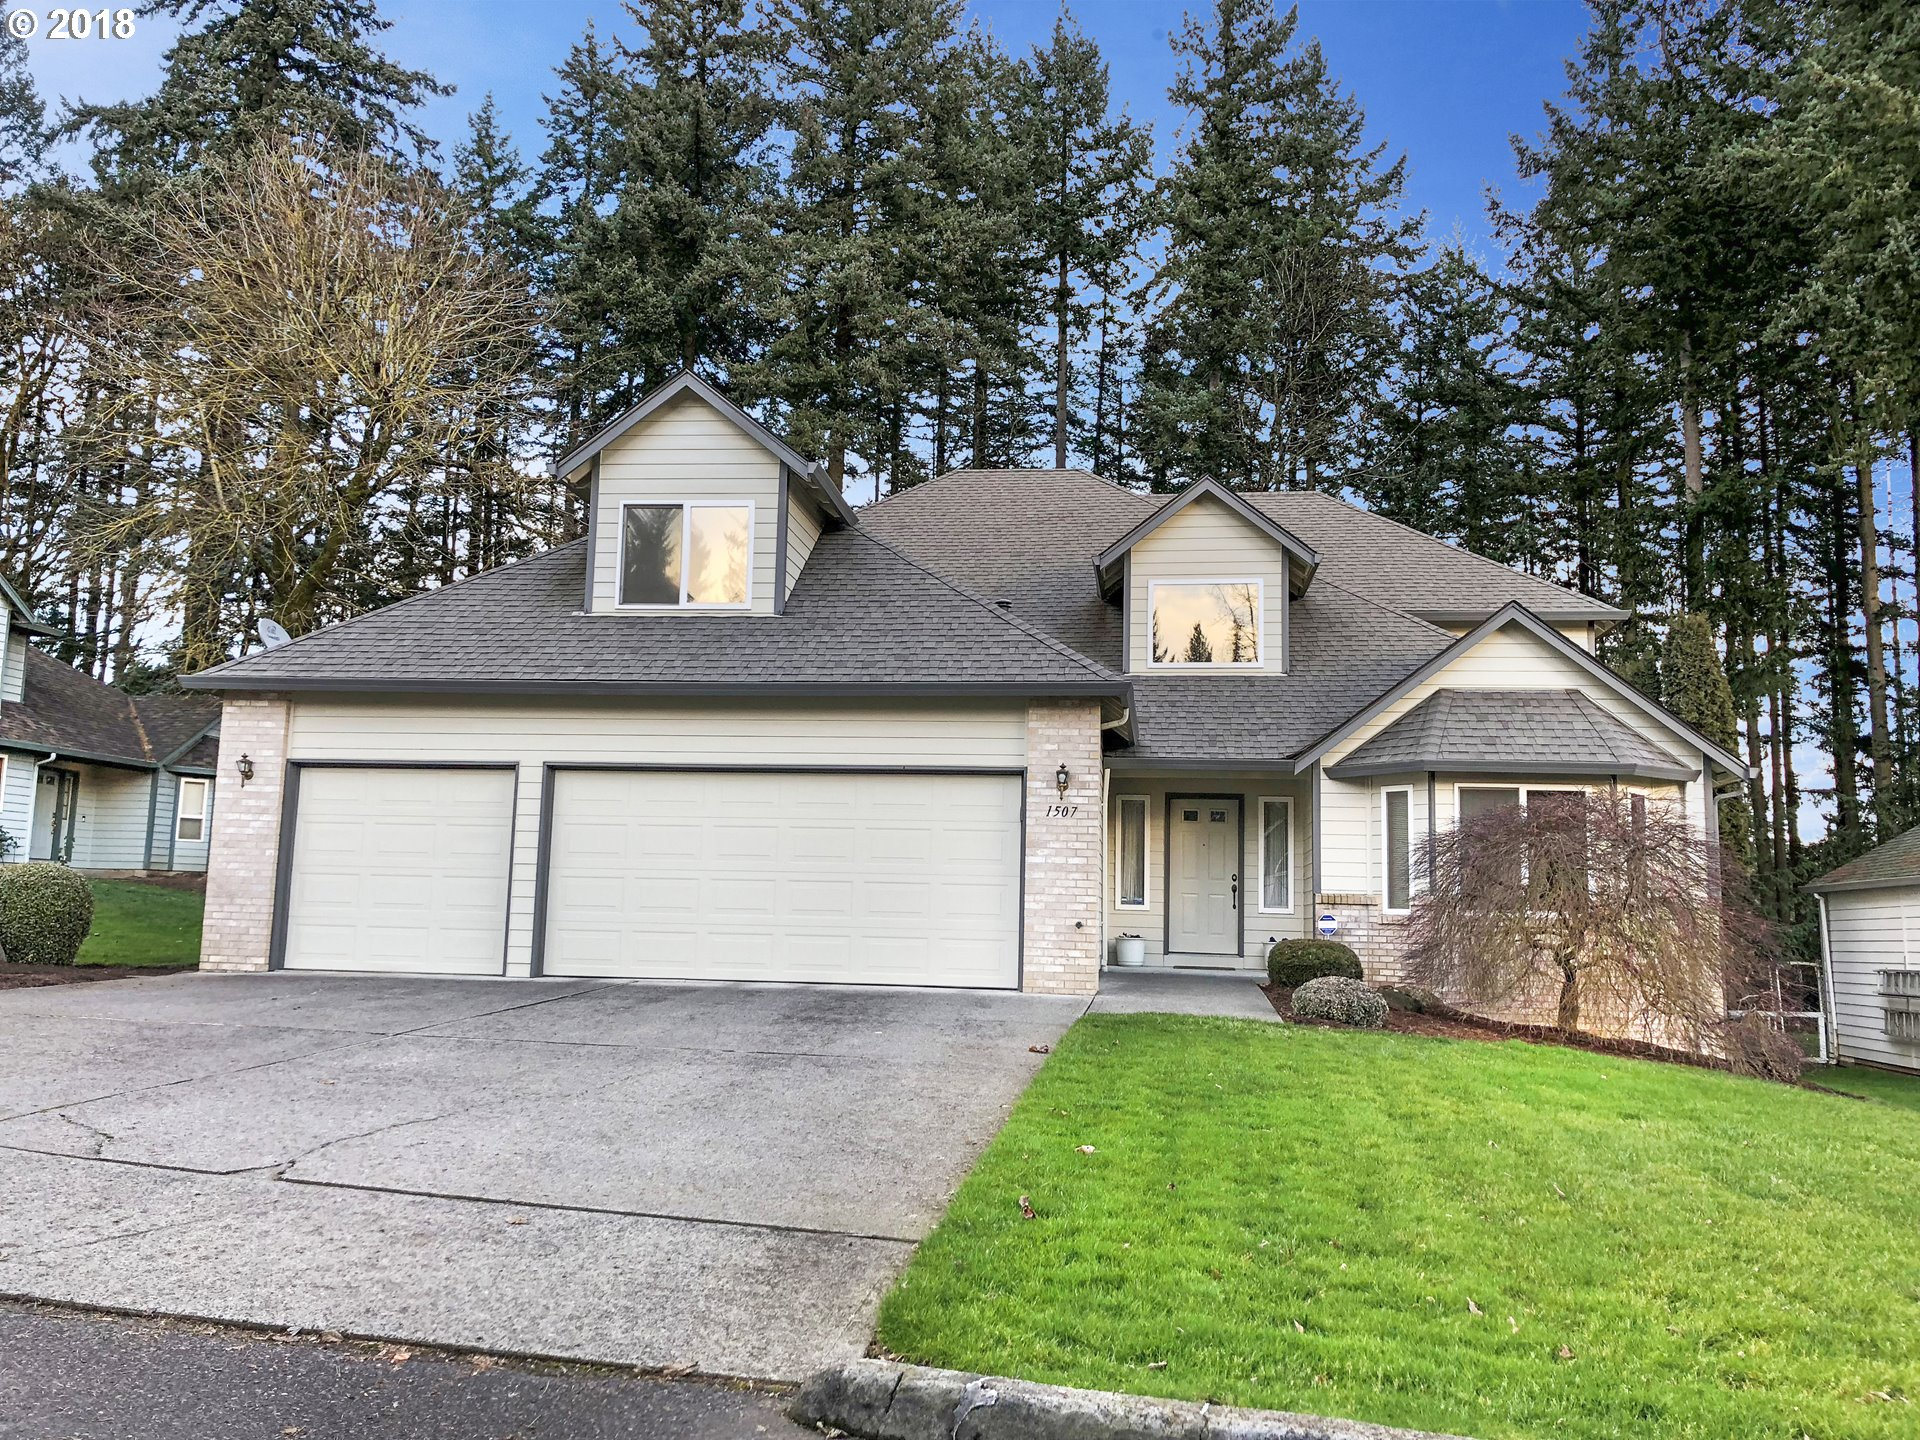 Beautiful remodeled home on .28 acre lot with all the major systems of the house recently replaced makes it like new. Enjoy the almost 2,900 square feet with 4 bedrooms plus a large bonus room. One of the bedrooms is conveniently located on the main floor. AC unit, dishwasher, furnace, paint, roof and water heater all replaced within last couple years. Ready for you to move in and make your home.